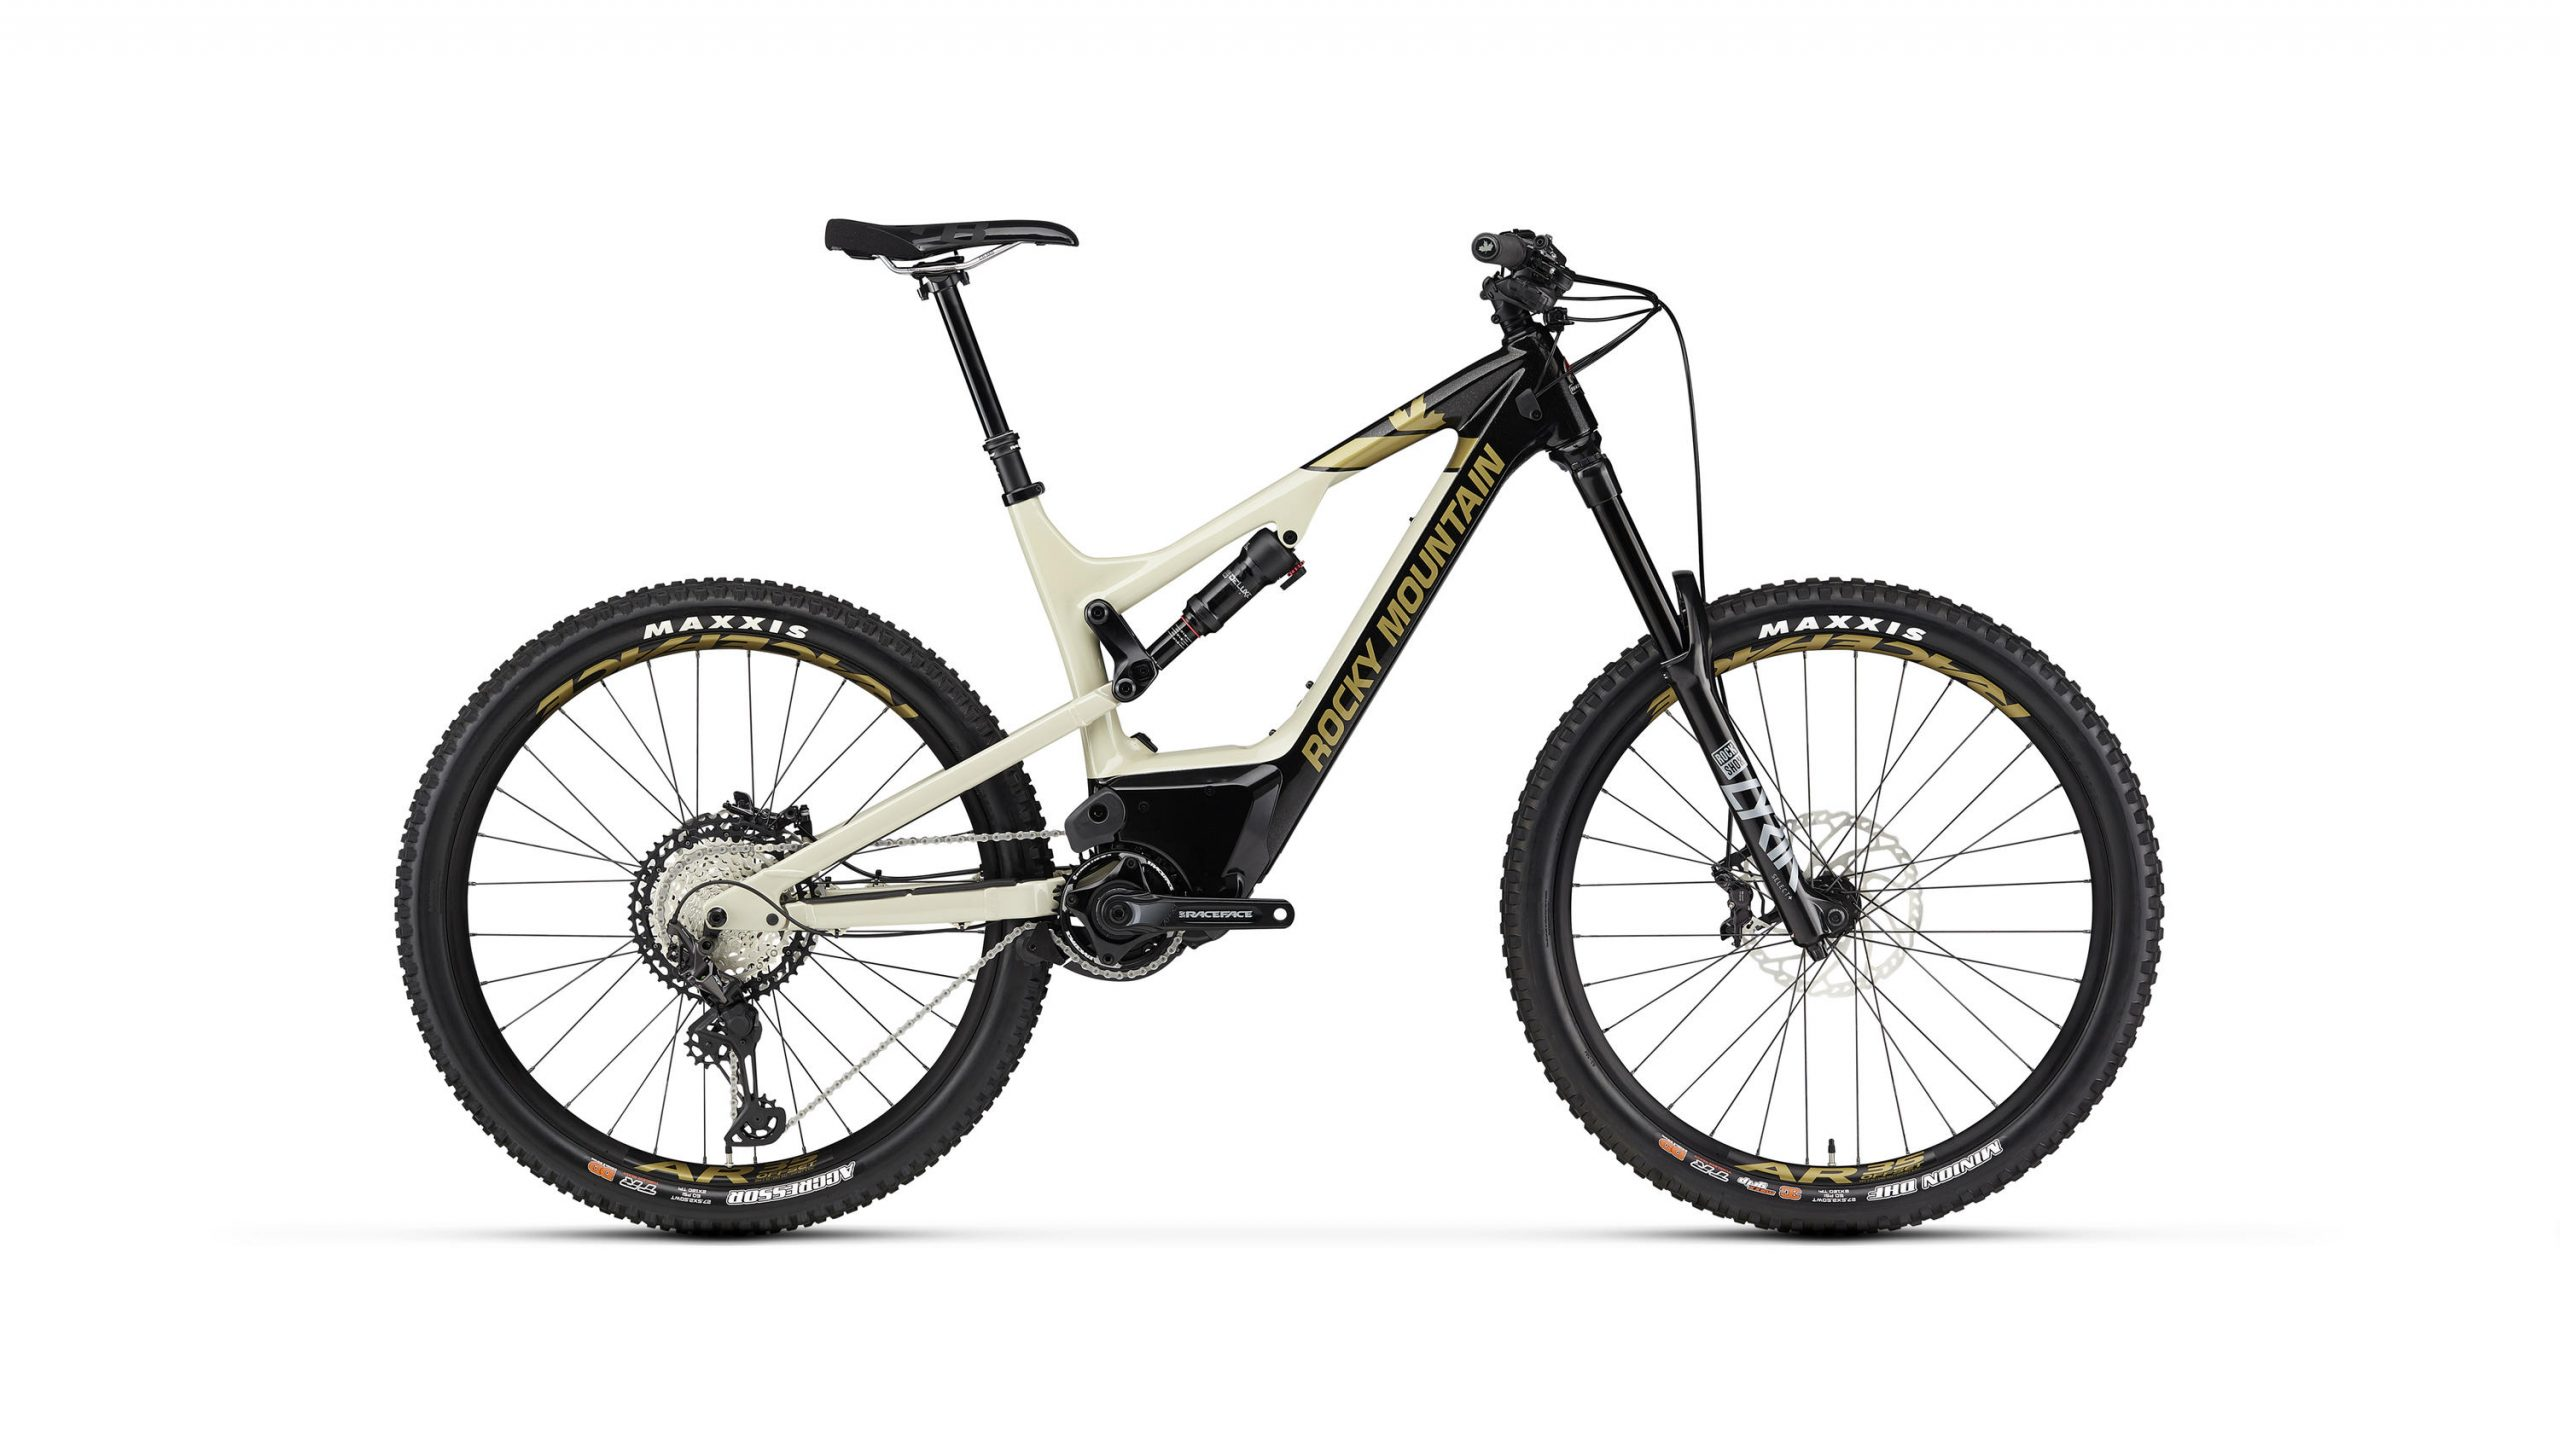 2020 ROCKY MOUNTAIN POWERPLAY ALTITUDE C 70 CARBON